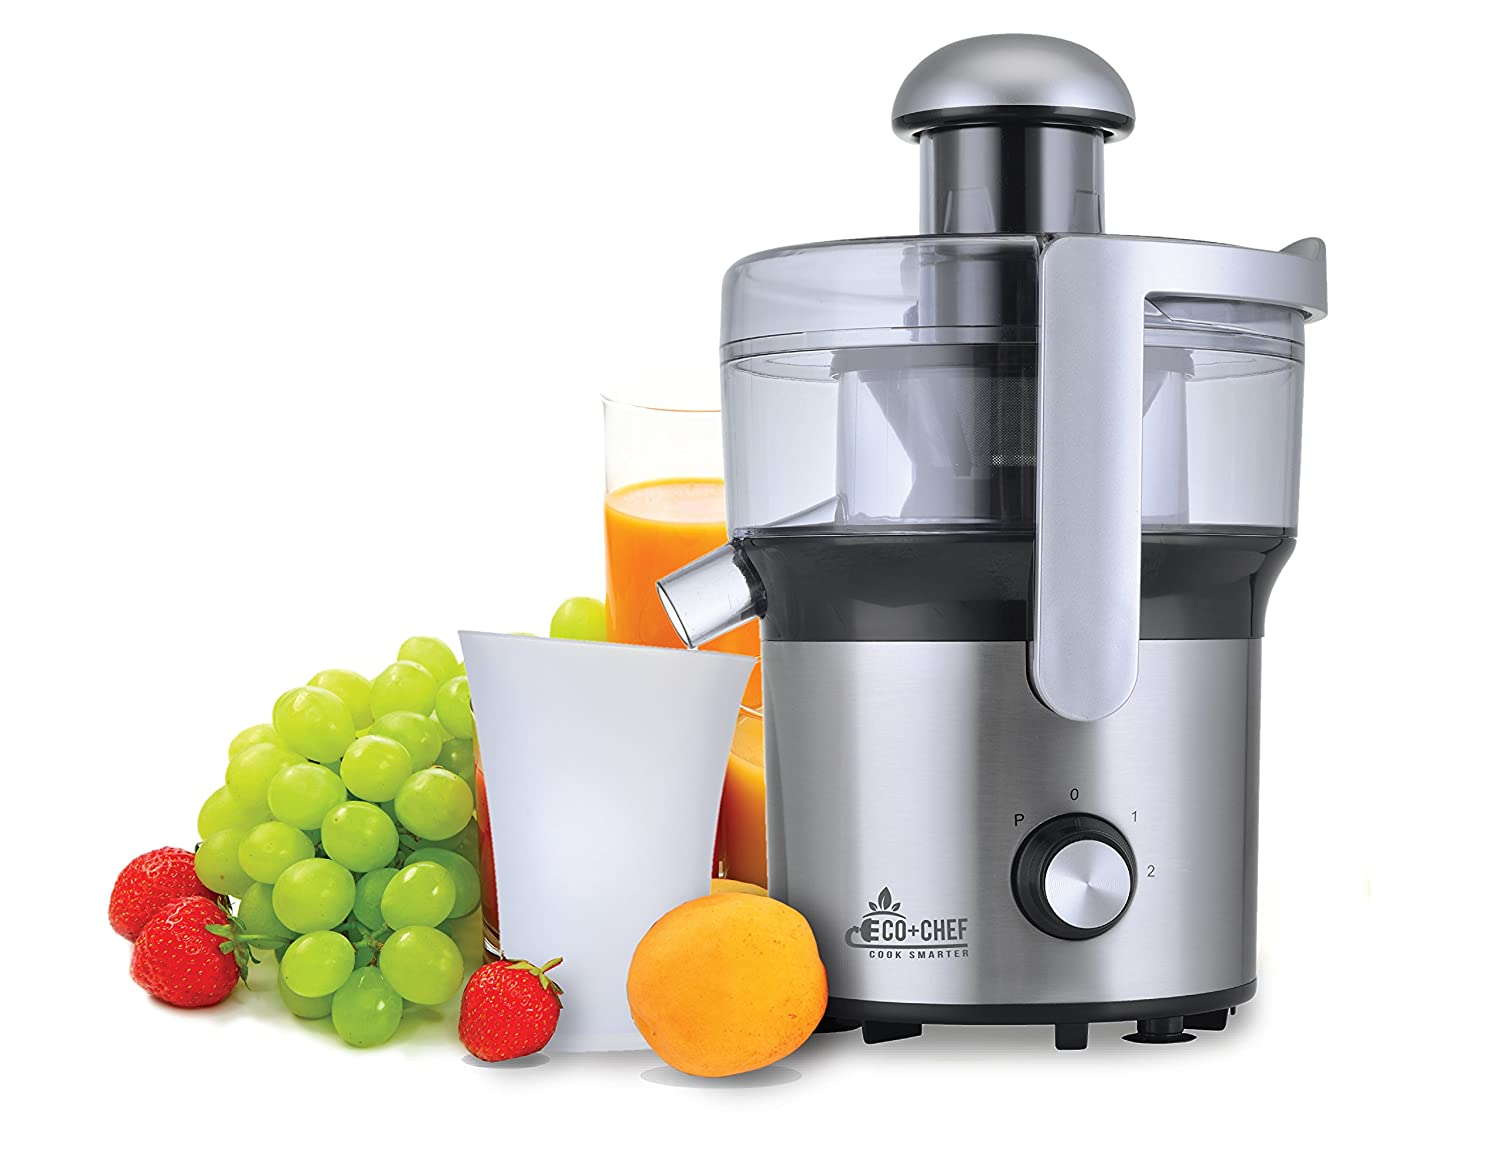 Eco+Chef Stainless 300W Dual Speed Steel Centrifugal Juicer for Fruit and Vegetables, Apples Oranges Pears Grapes Strawberries Blueberries Watermelon Mango Pineapple Peach Plums Nectarines Papaya Eco Chef